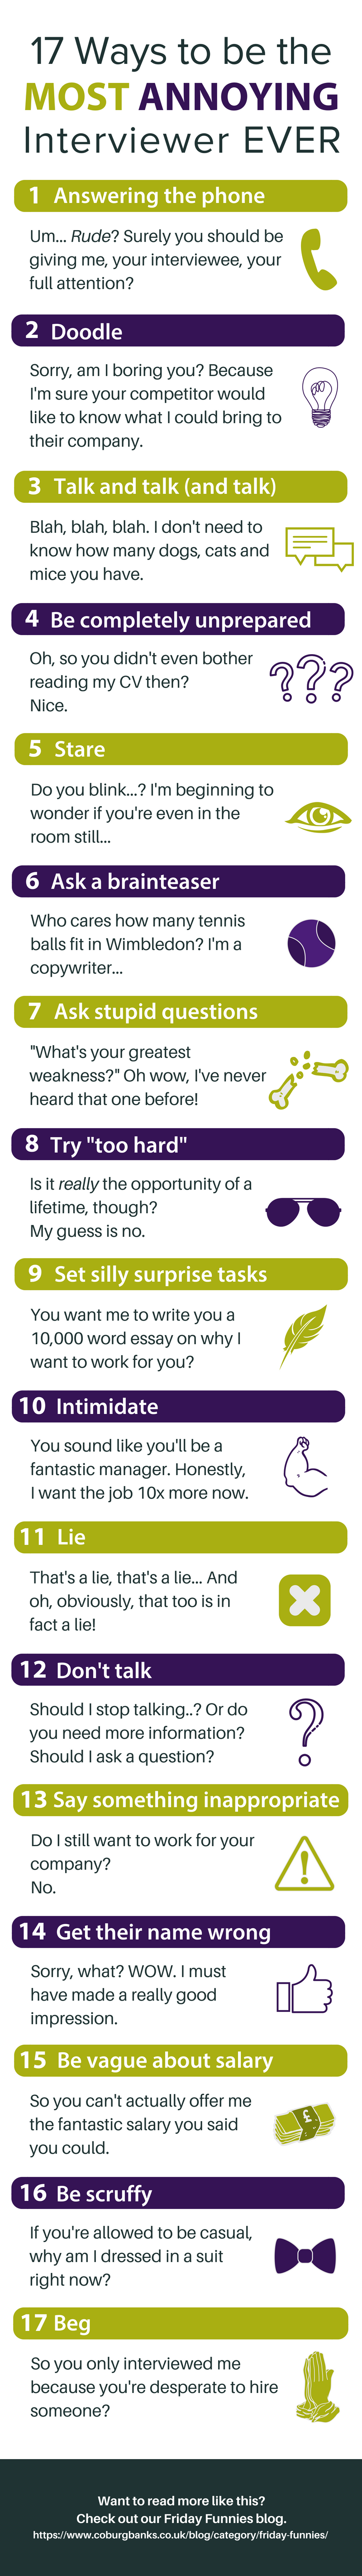 17 Ways to be the most annoying interviewer ever